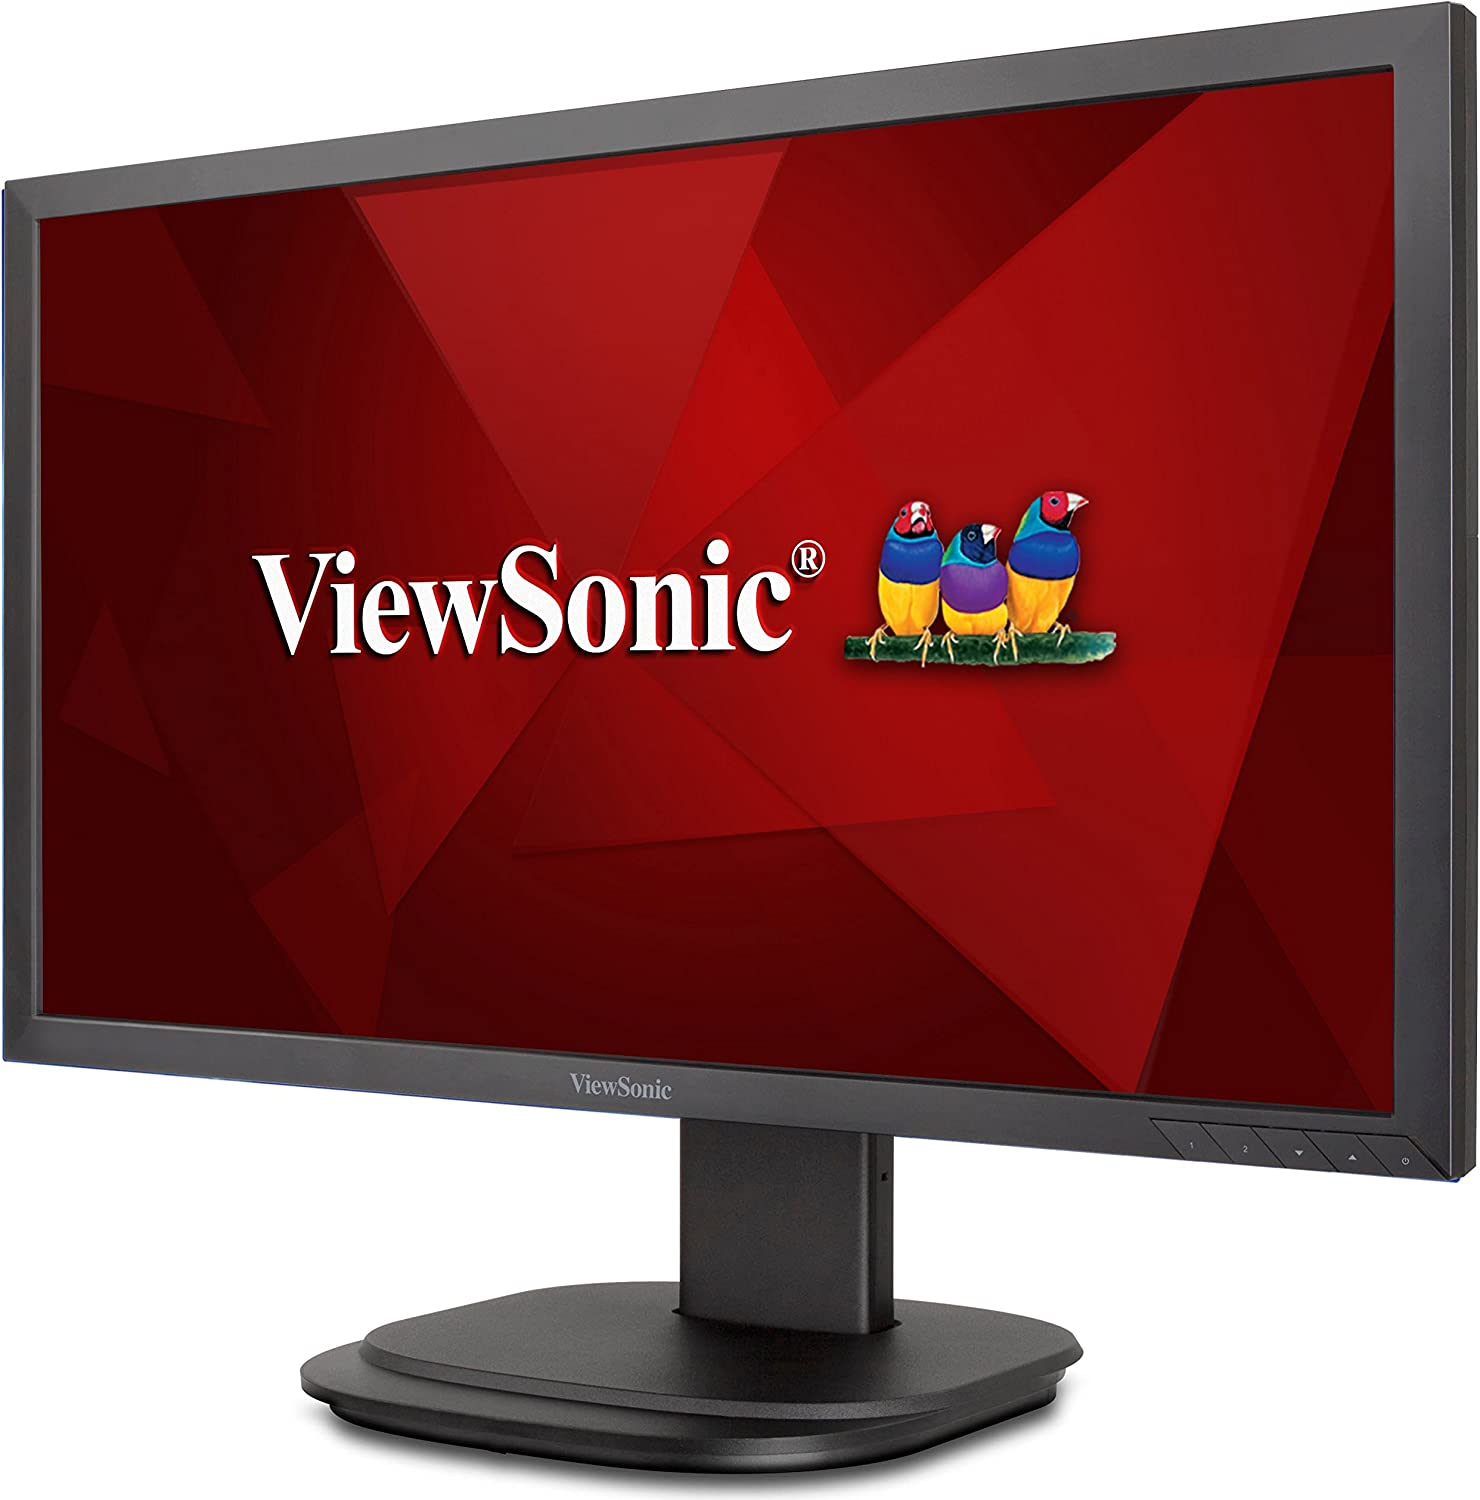 amazon com viewsonic vg2439smh 24 inch 1080p ergonomic monitor with hdmi displayport and vga for home and office black computers accessories viewsonic vg2439smh 24 inch 1080p ergonomic monitor with hdmi displayport and vga for home and office black